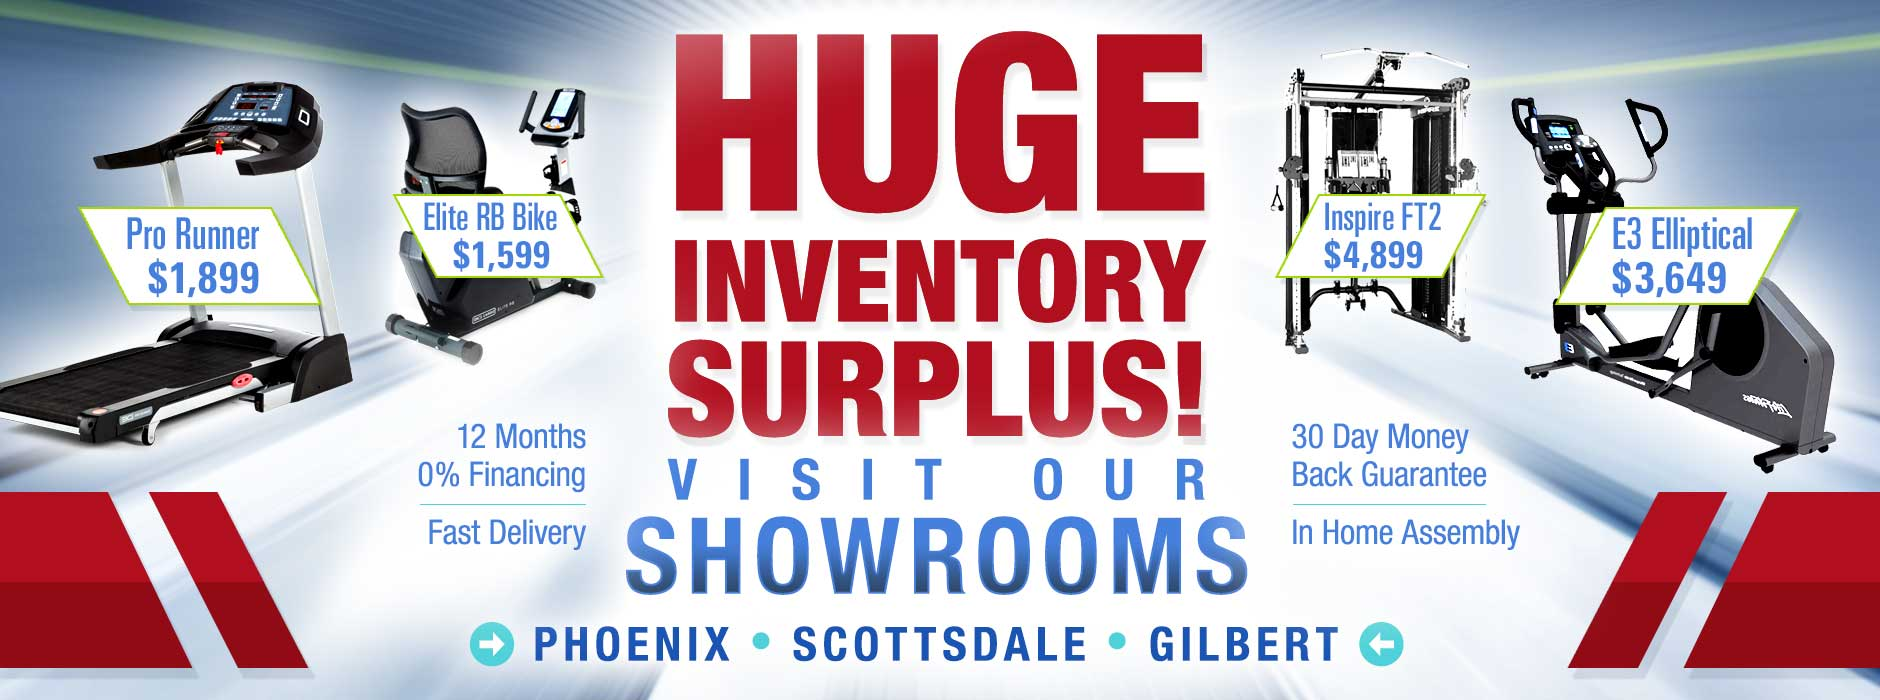 At Home Fitness Huge Inventory Surplus May 2021 Visit our Showrooms